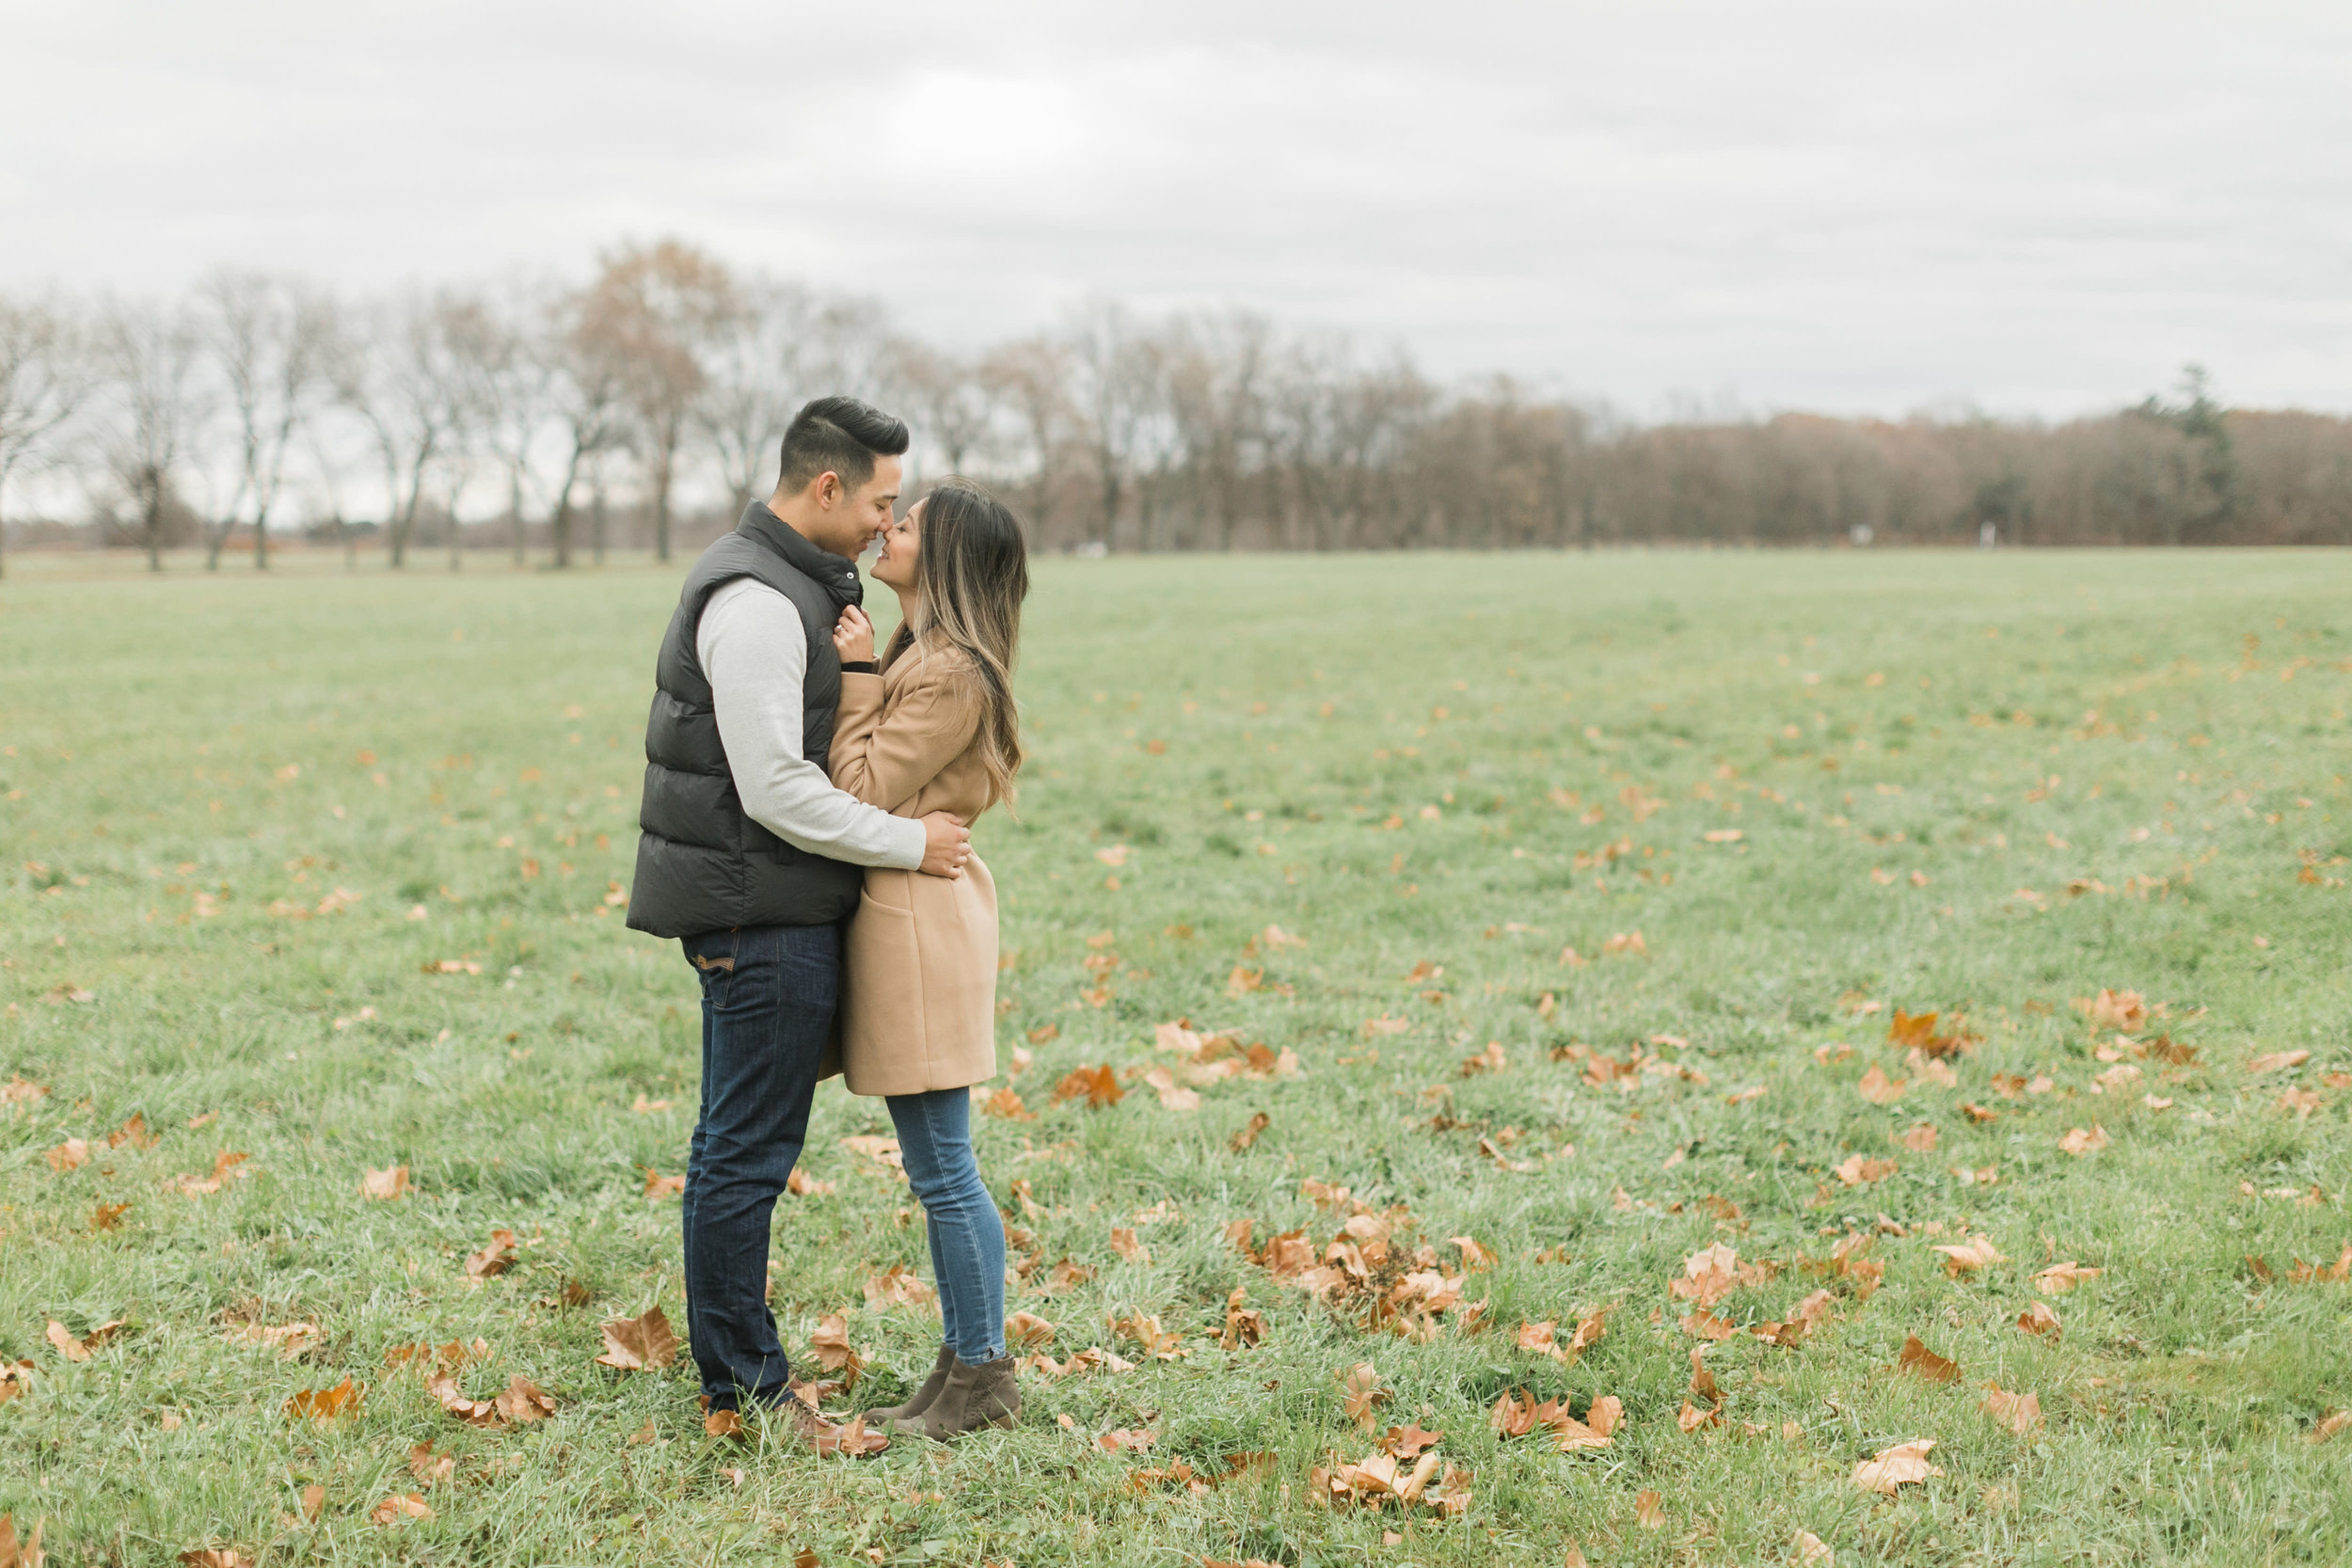 Julia___Rene_Engagement_Session___High._Res._Finals_0056.jpg